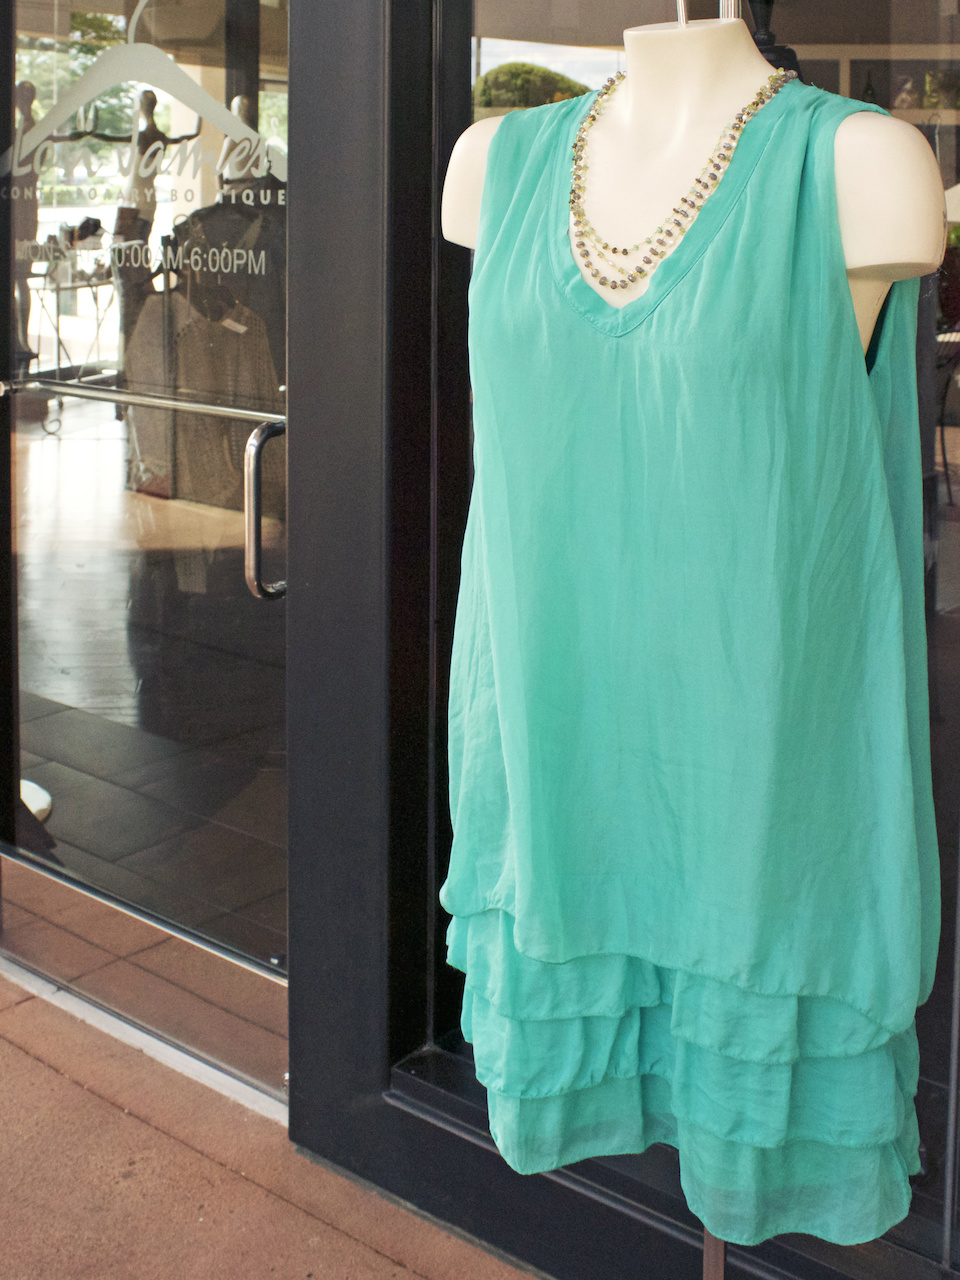 Colorful and cool, this tiered silk dress brings a pop of green into any party